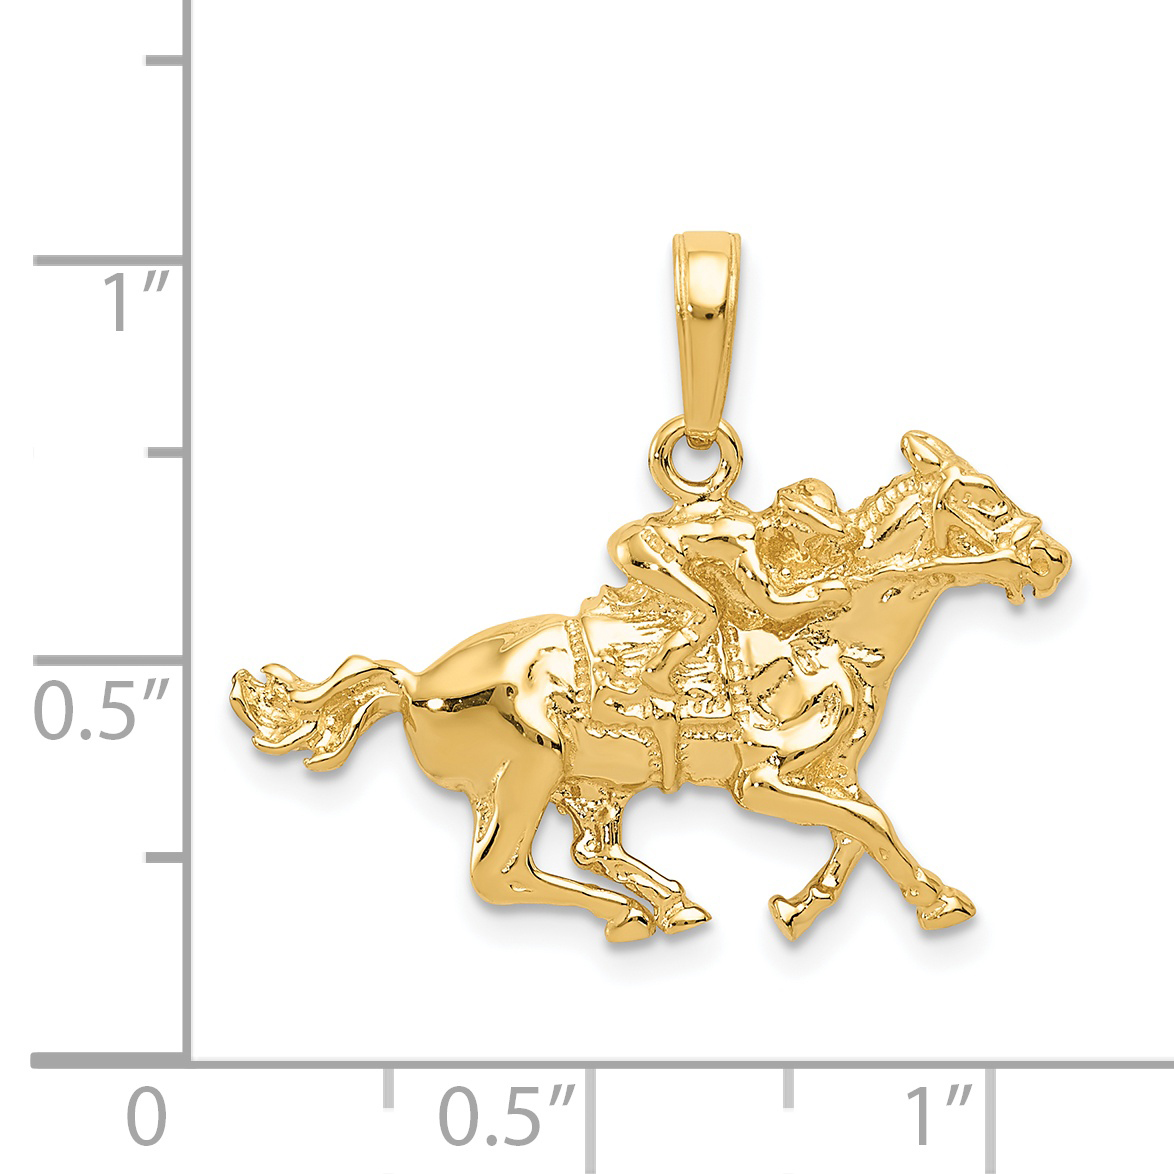 14k Yellow Gold Jockey On Horse Pendant Charm Necklace Animal Sport Man Fine Jewelry Gift For Dad Mens For Him - image 1 de 2